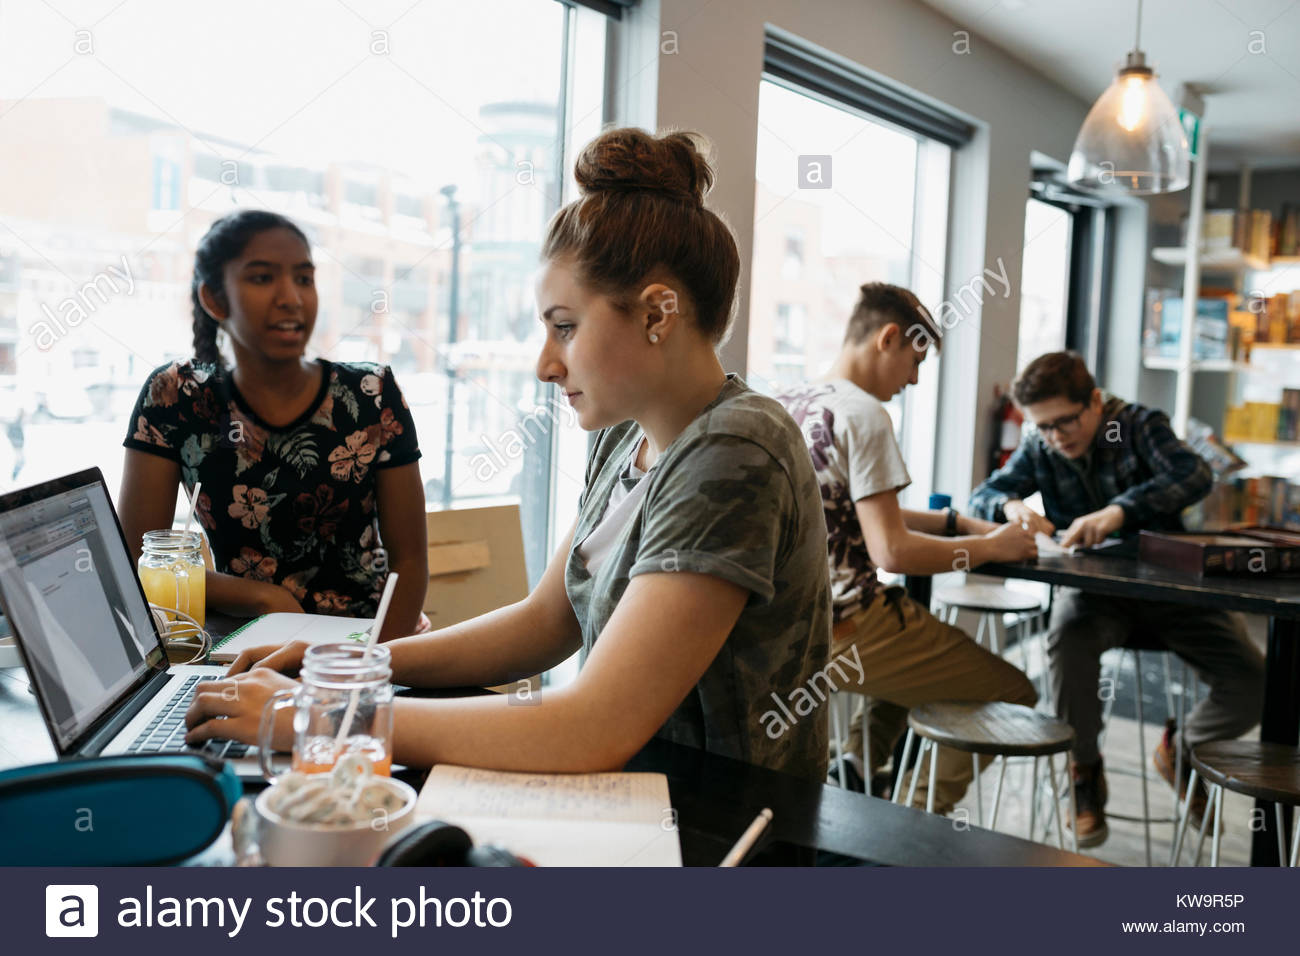 High school students studying,using laptop in cafe - Stock Image